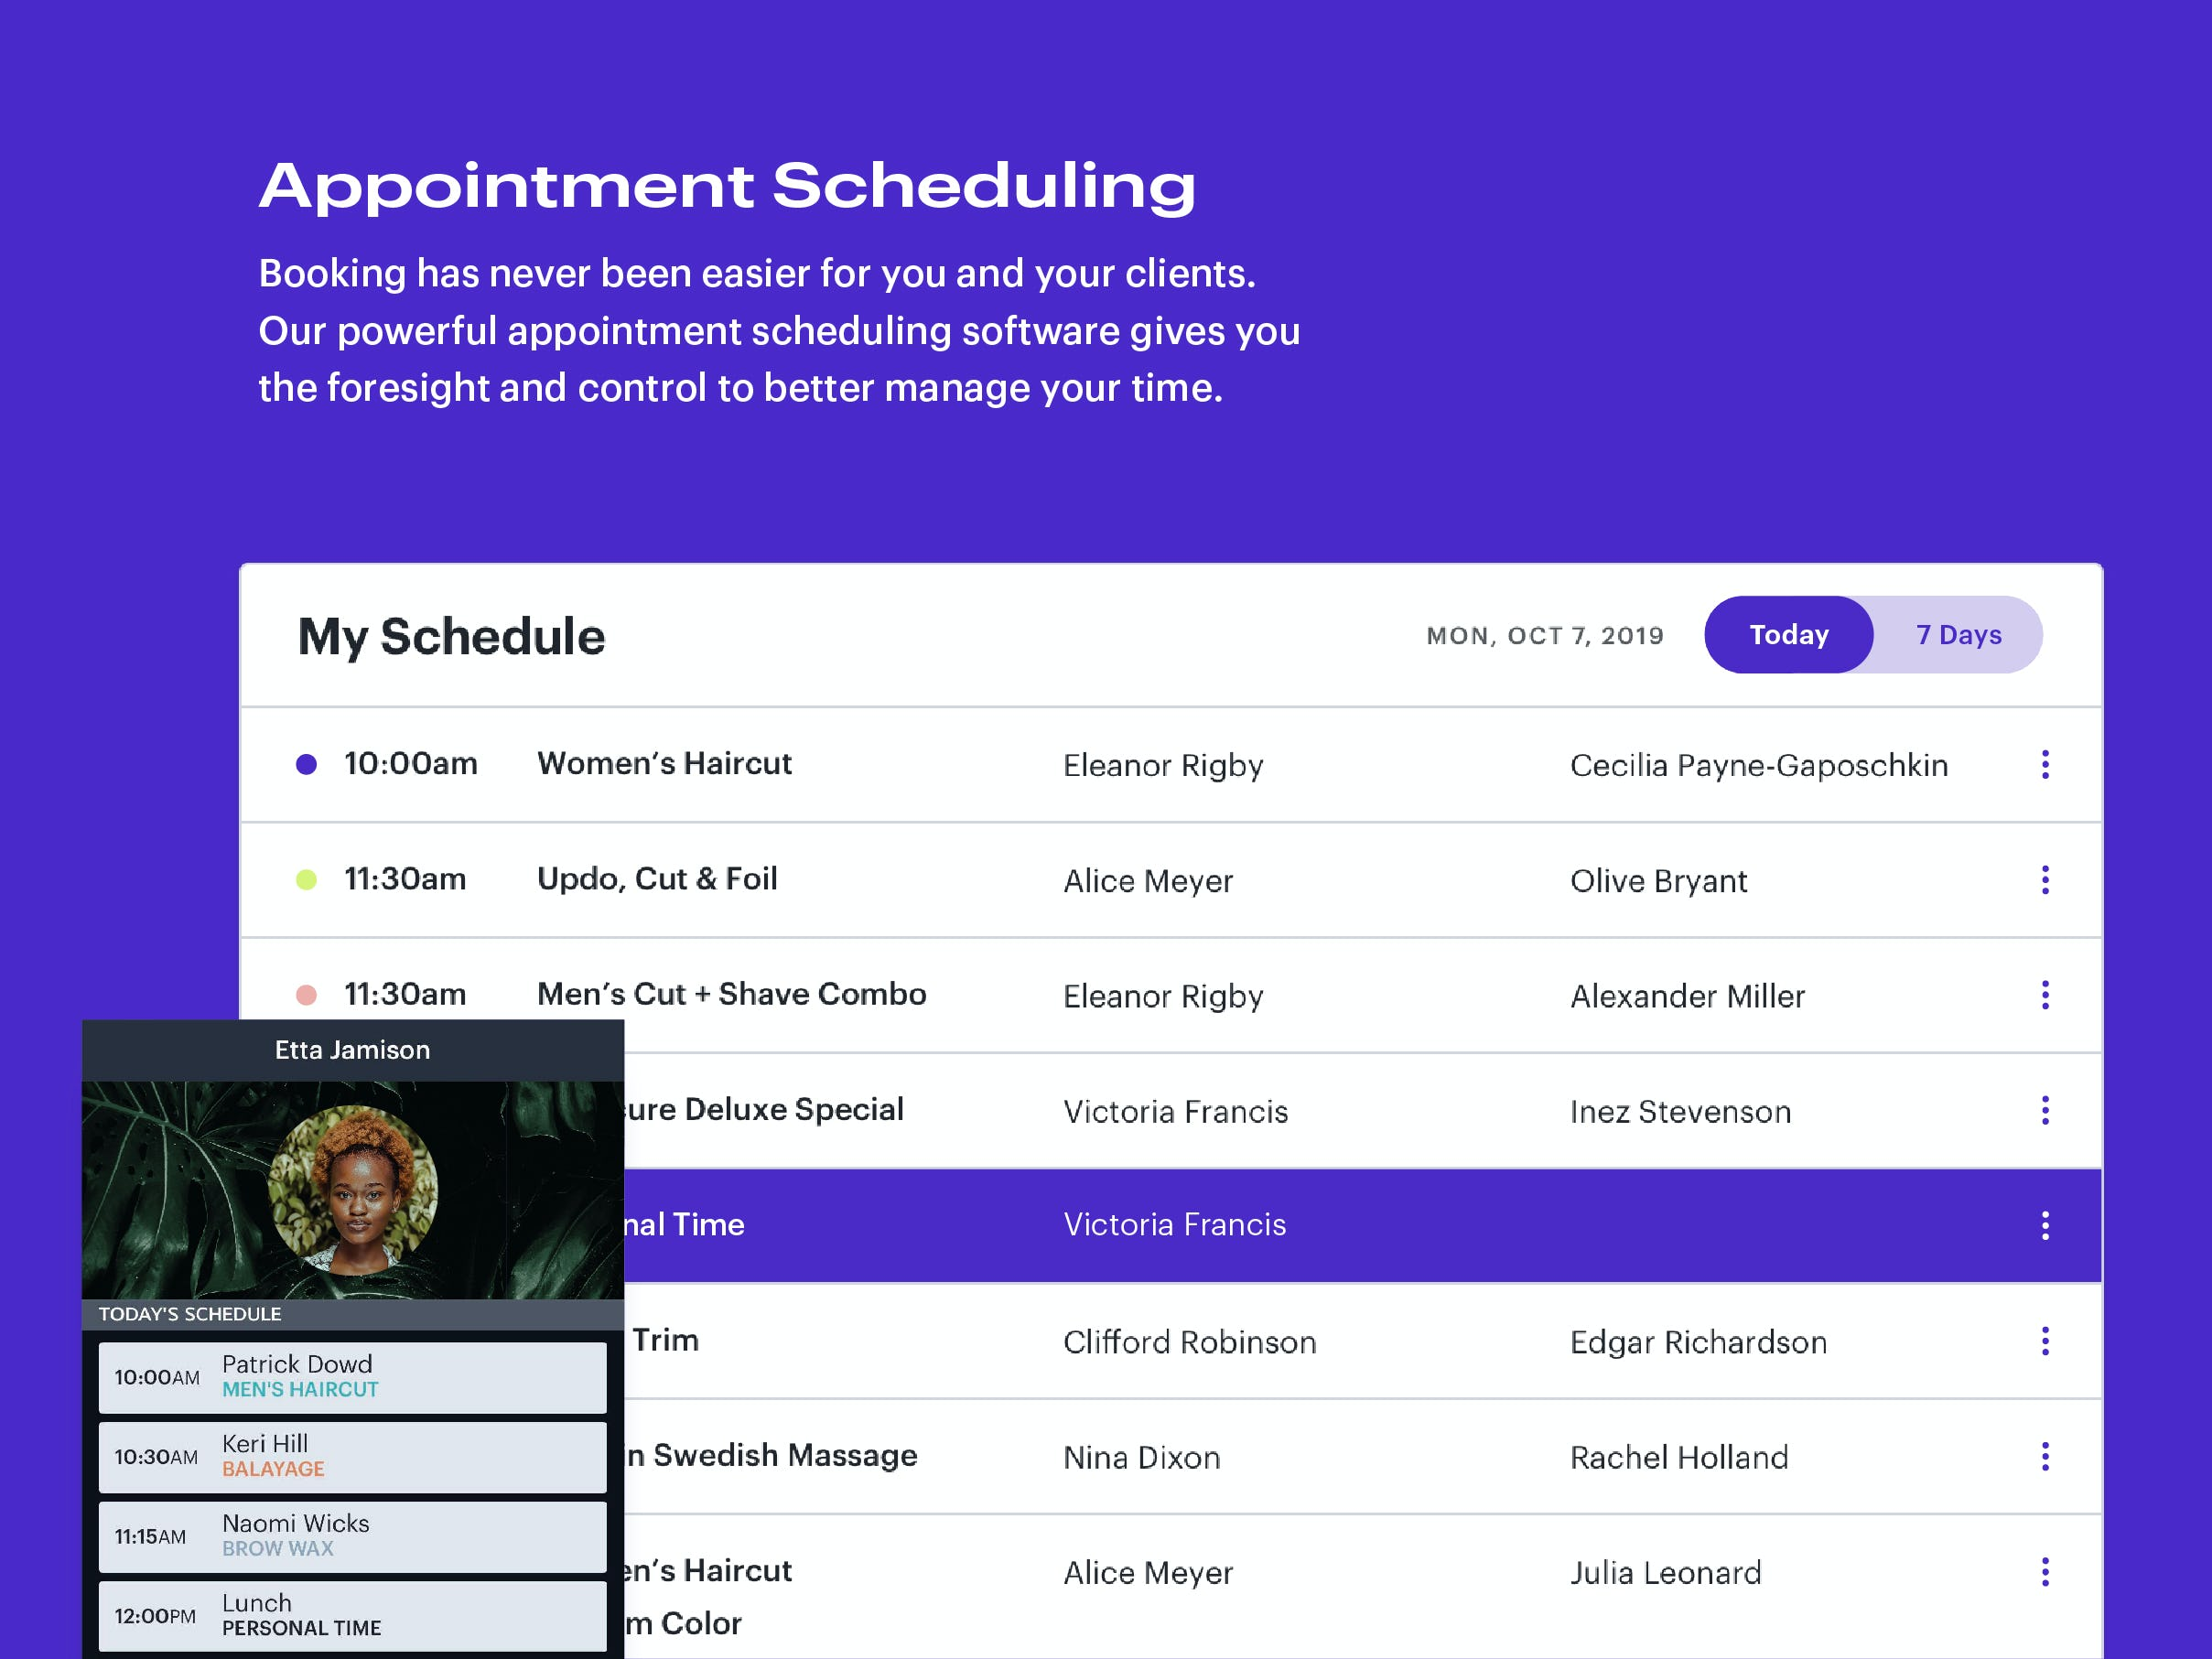 Schedulicity Software - Appointment Scheduling: Booking has never been easier for you and your clients. Our powerful appointment scheduling software gives you the foresight and control to better manage your time.